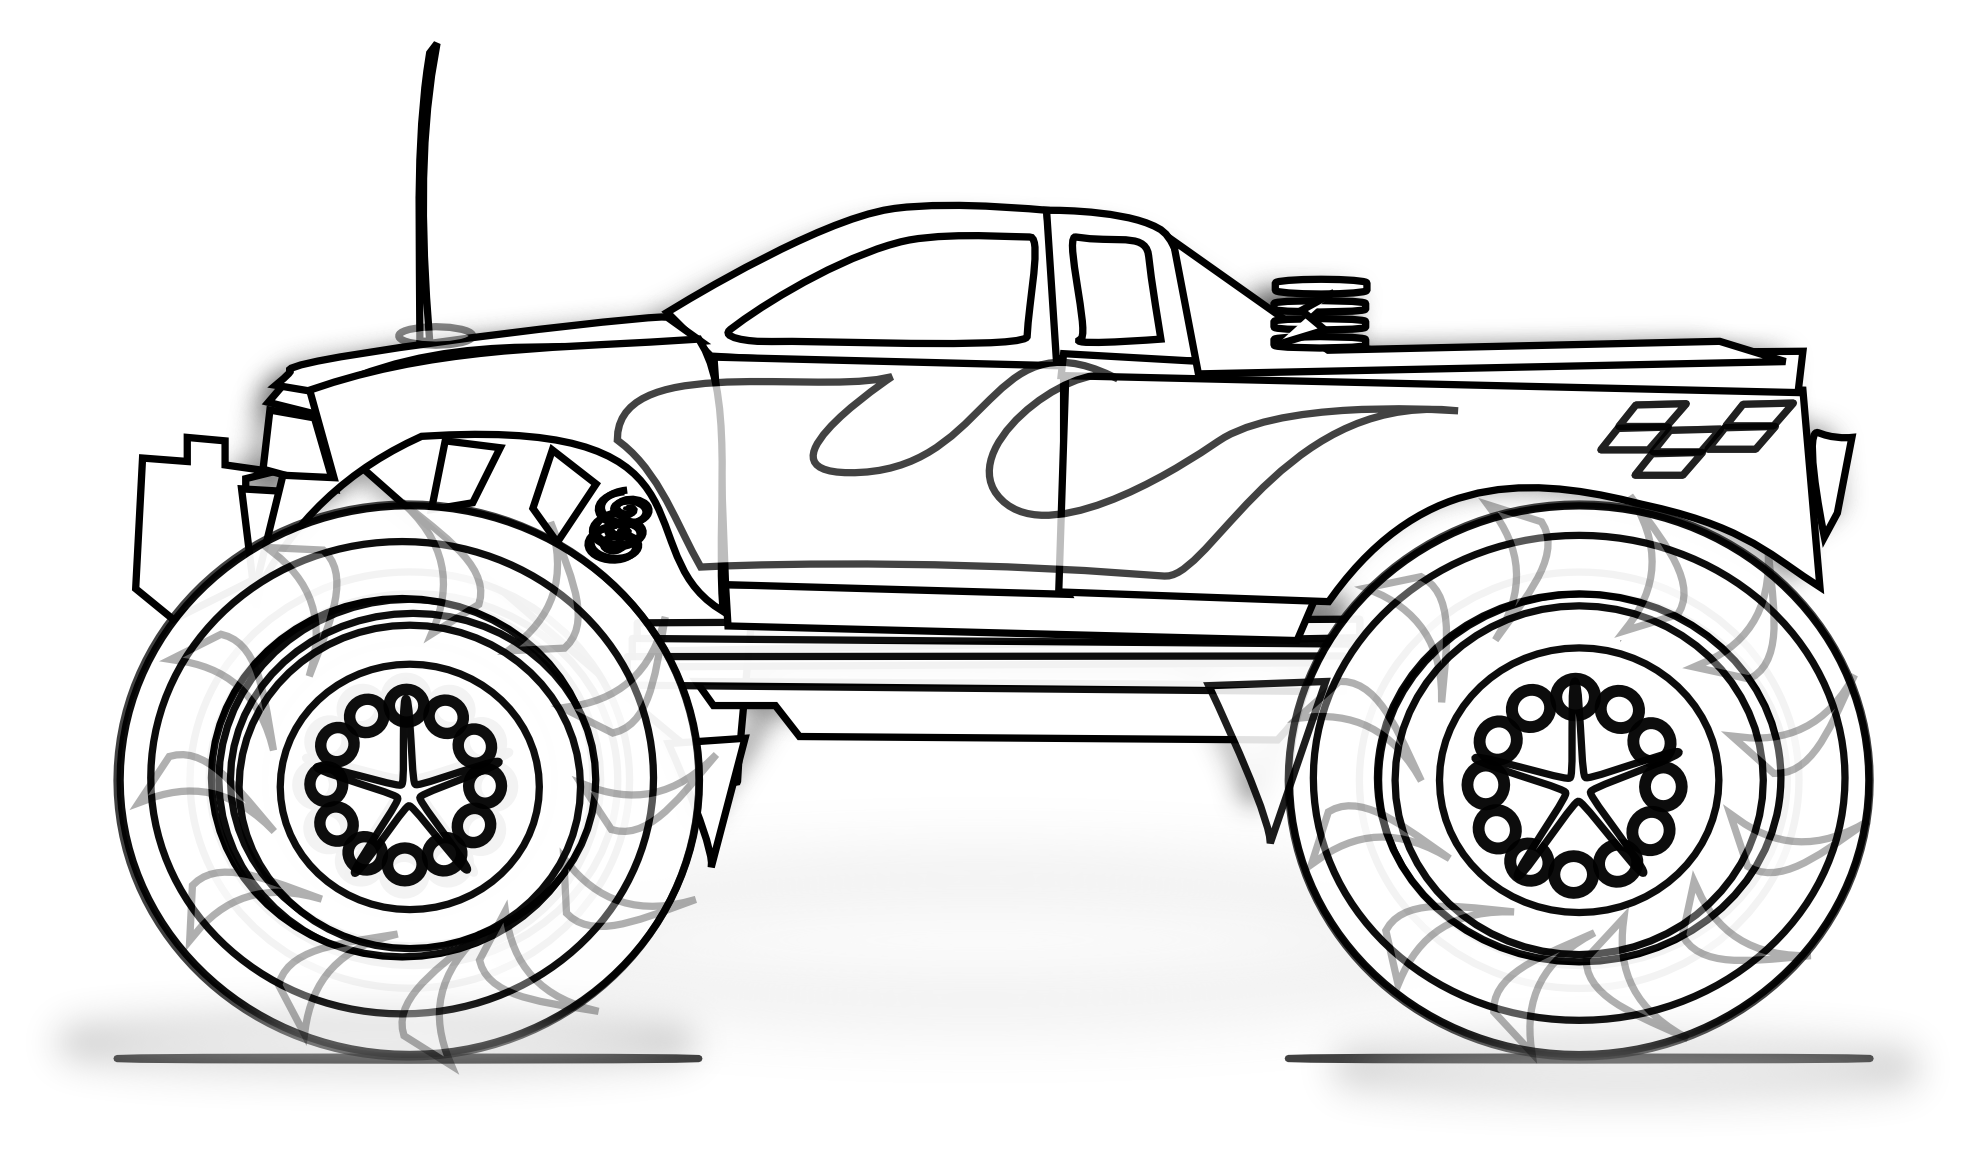 coloring pages trucks Free Printable Monster Truck Coloring Pages For Kids | Birthday  coloring pages trucks